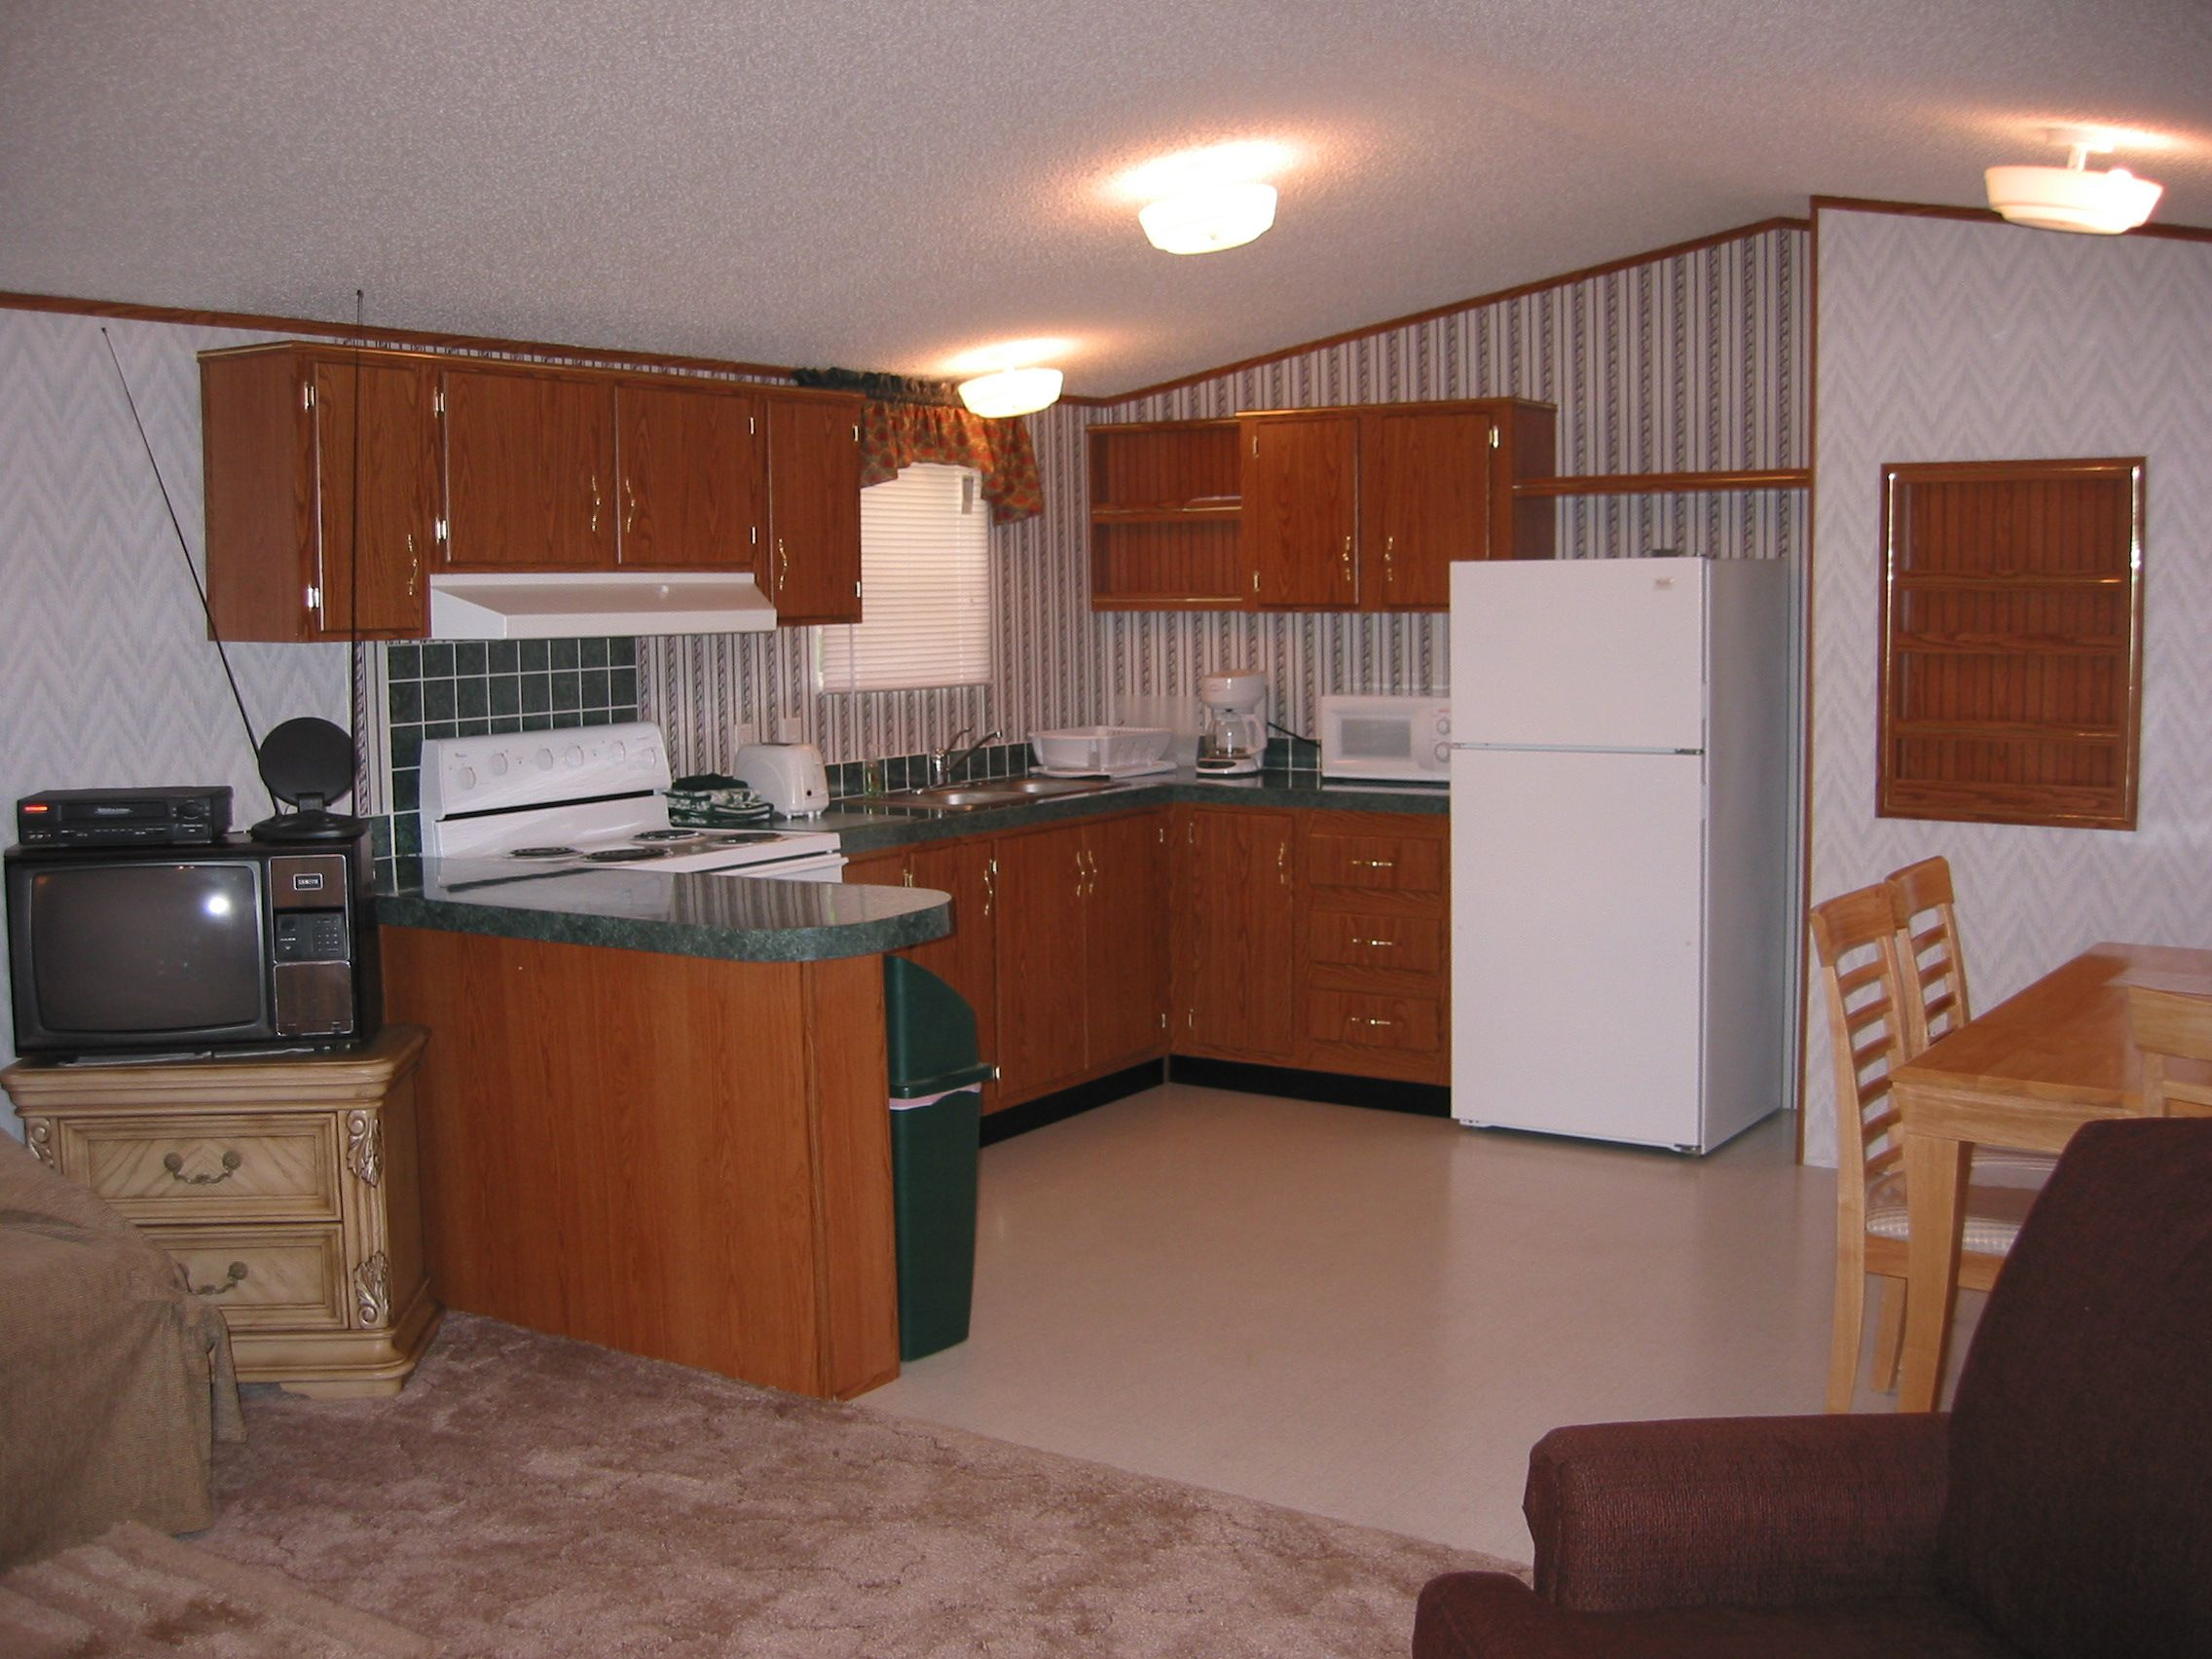 Mobile Home Interior Design Ideas Set Mobile Home Remodeling Ideas  Mobile Home Not Available .